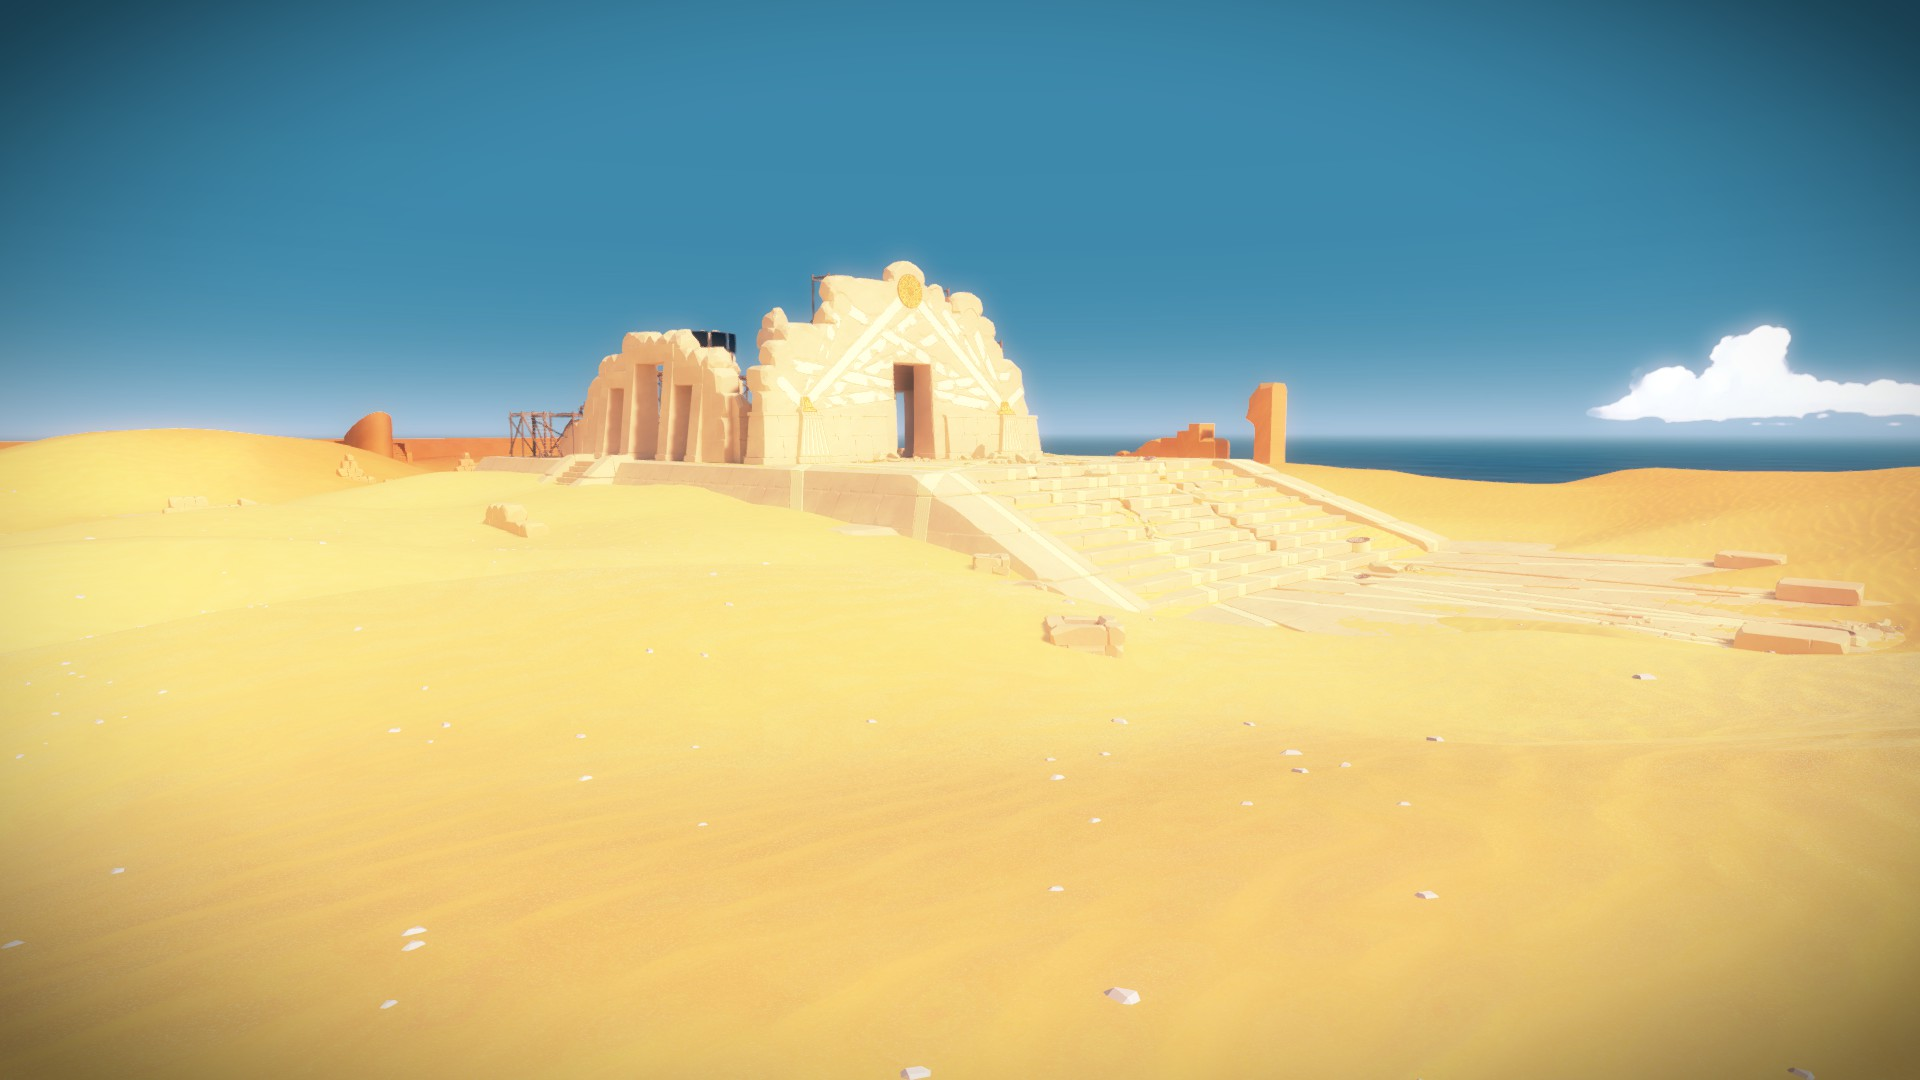 The Sand Temple -- now things are starting to get hard.